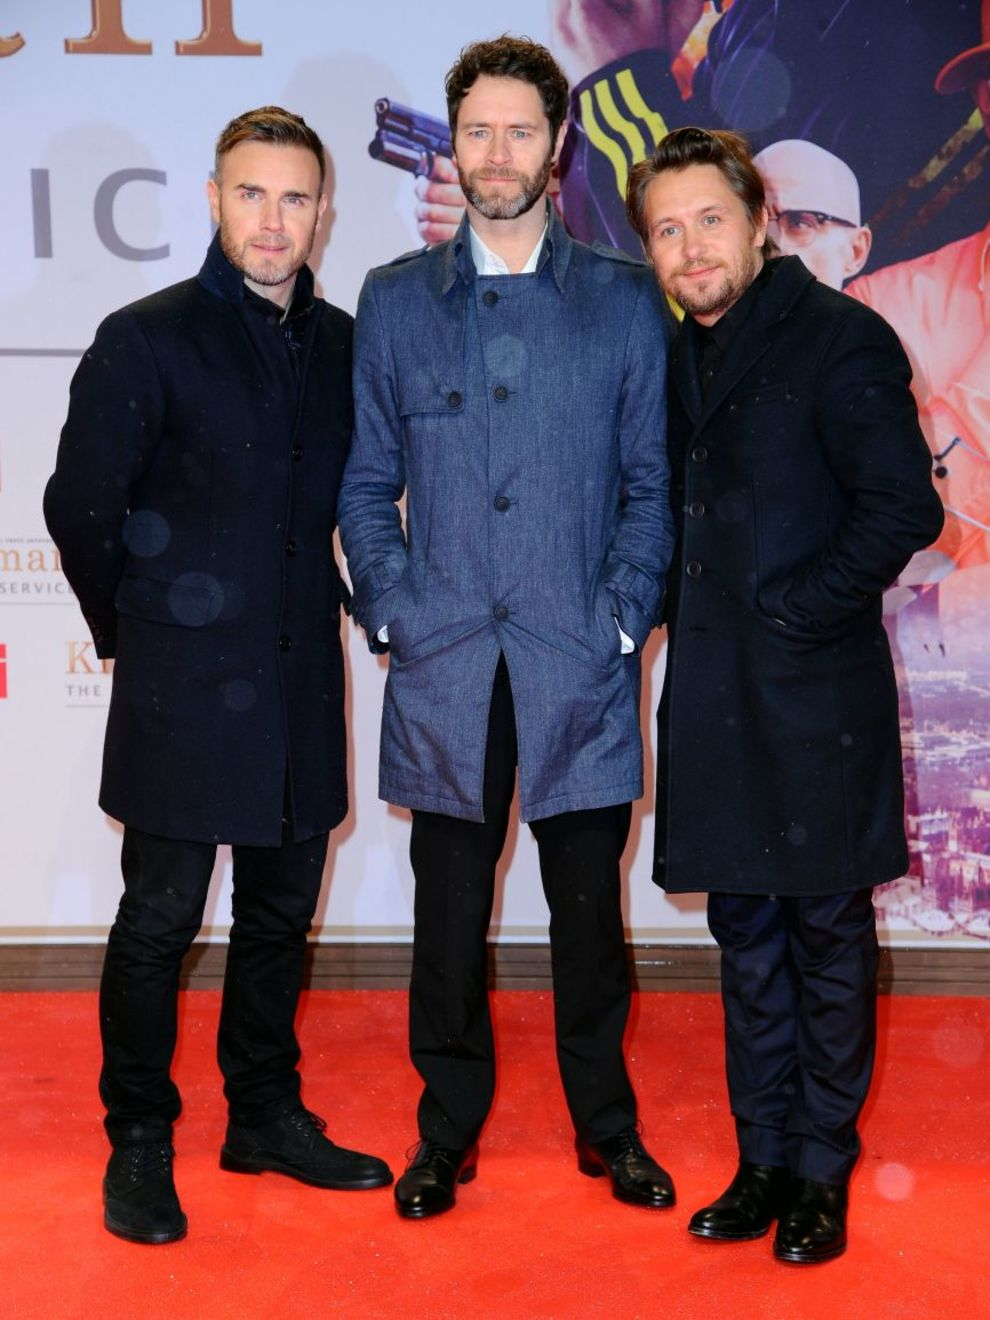 La banda de música Take That, compuesta por Gary Barlow, Mark Owen y...